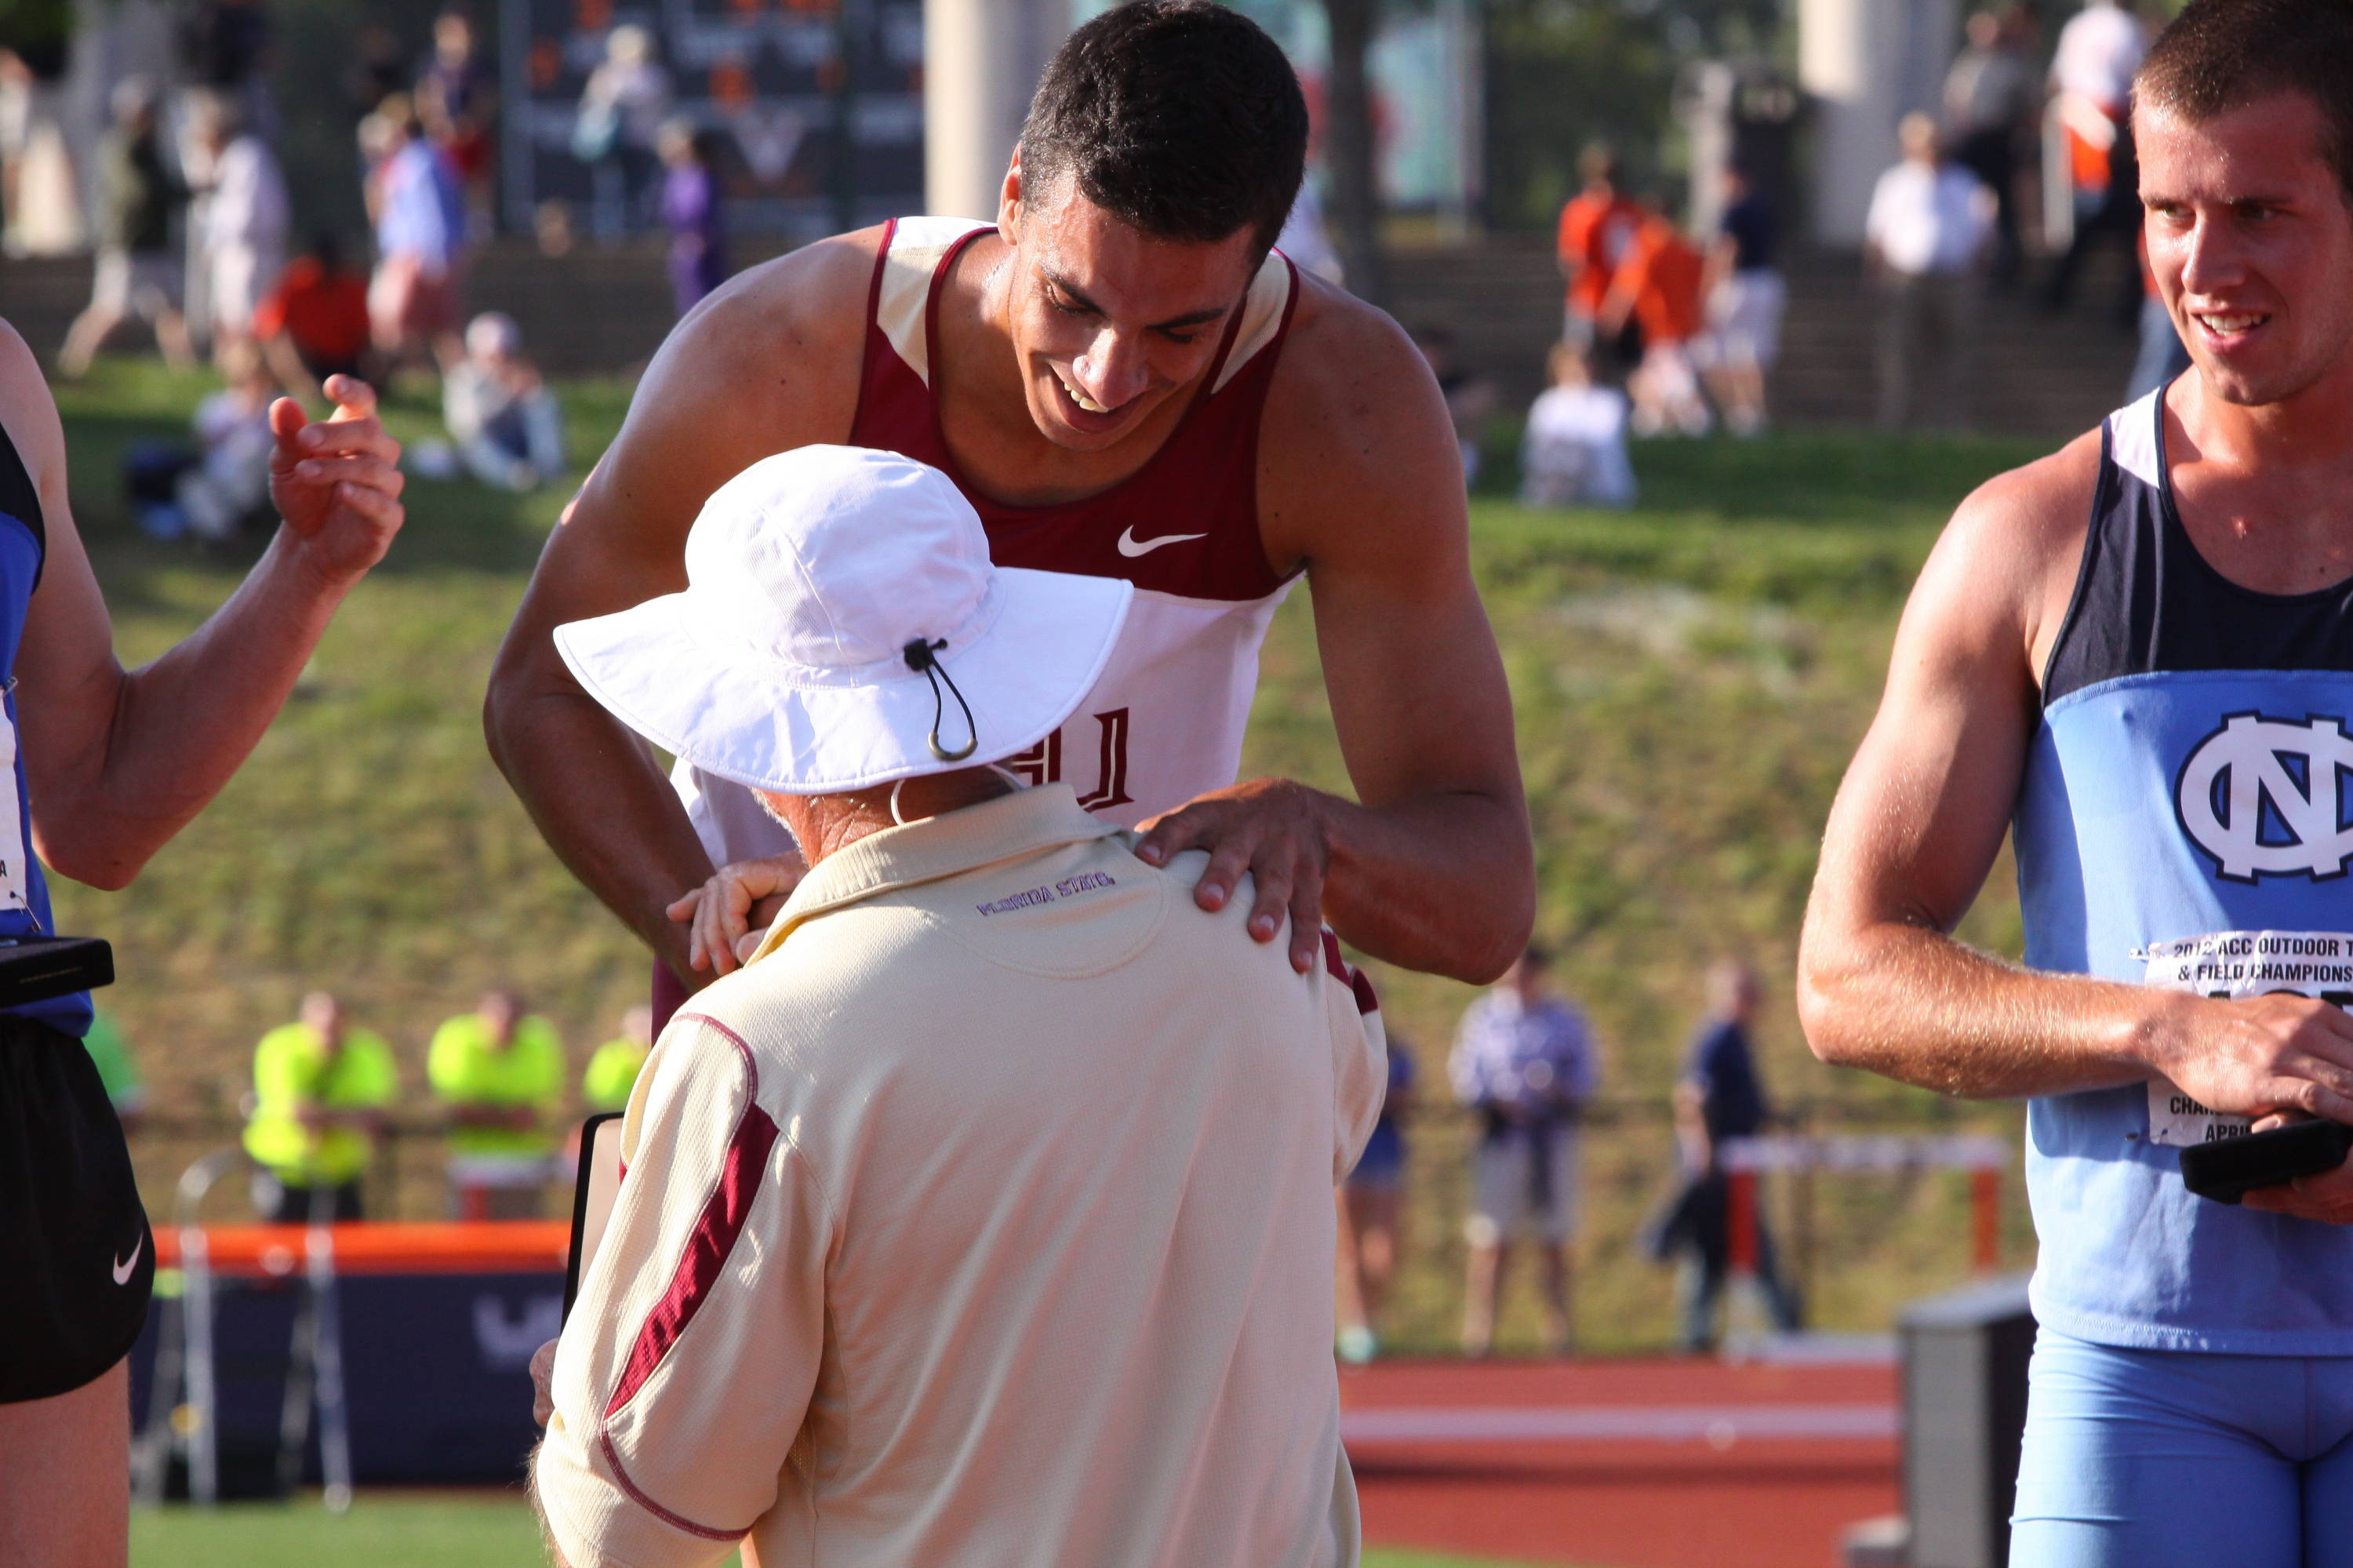 FSU coach Dennis Nobles presented Barroilhet his gold medal on the podium...